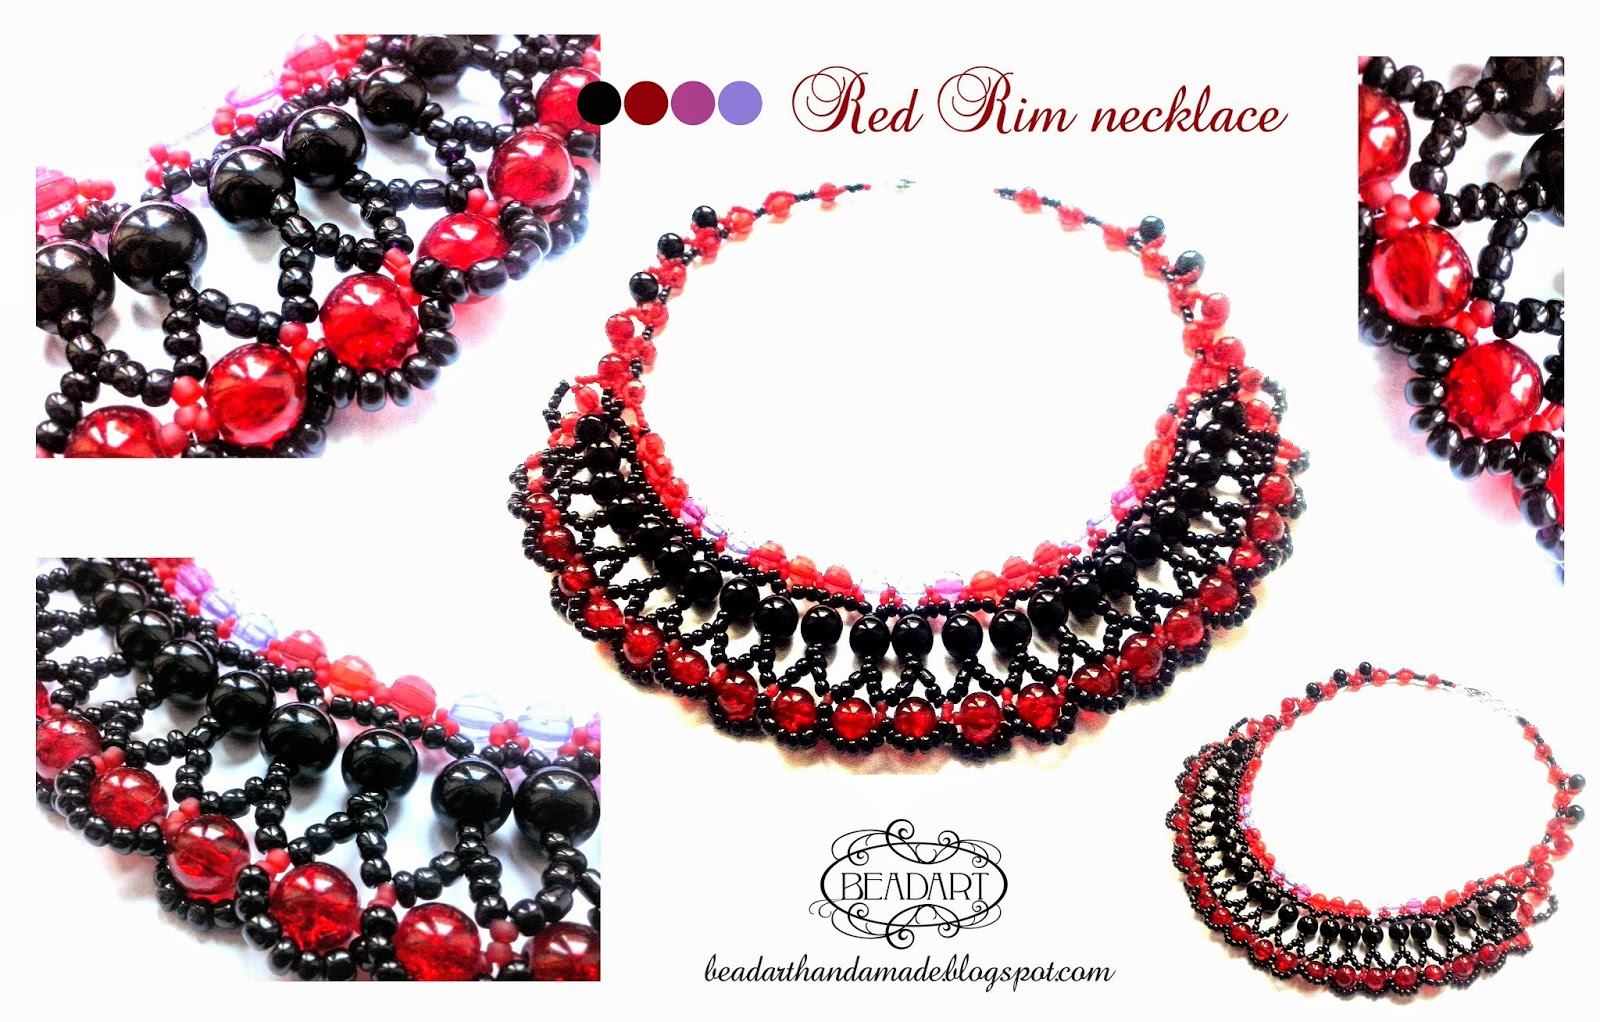 Red Rim necklace